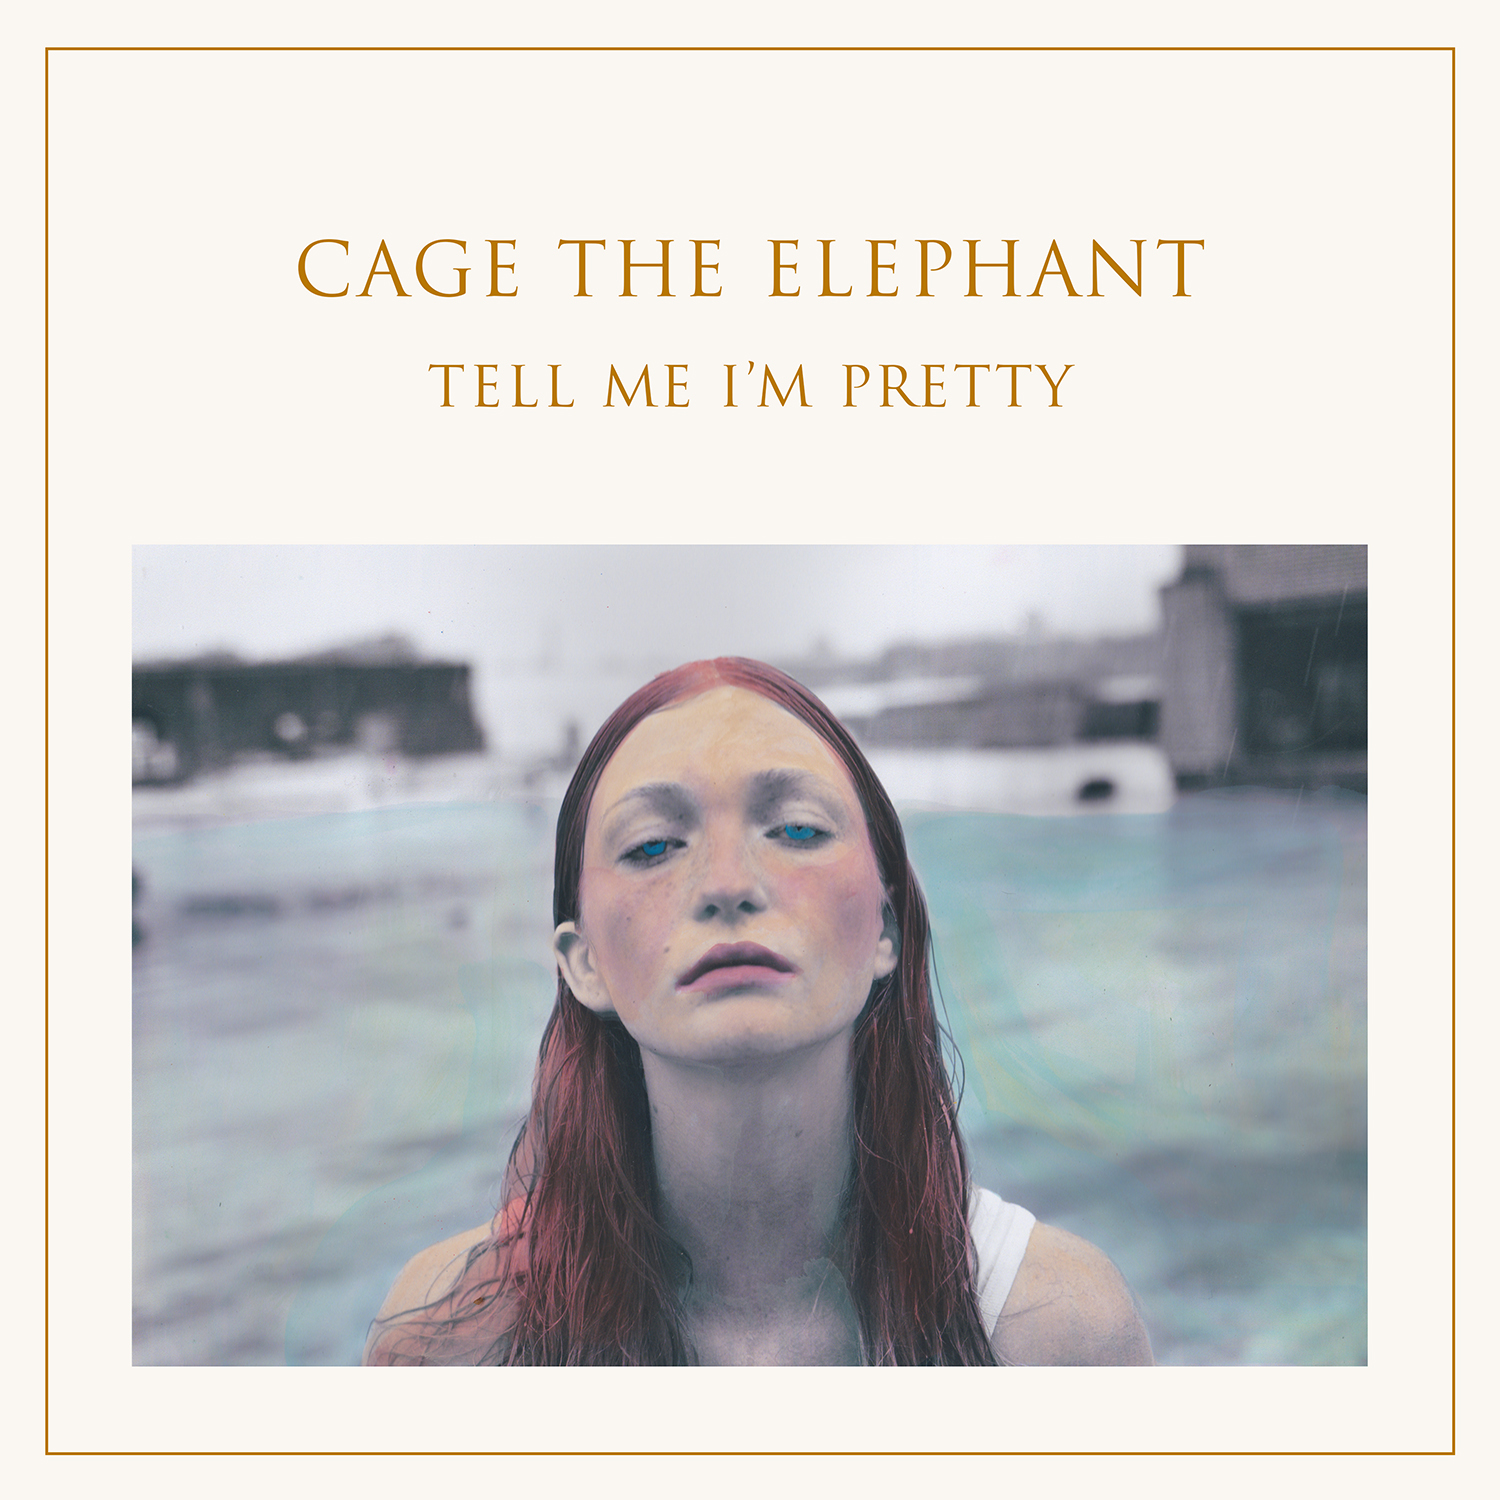 CAGE THE ELEPHANT cover